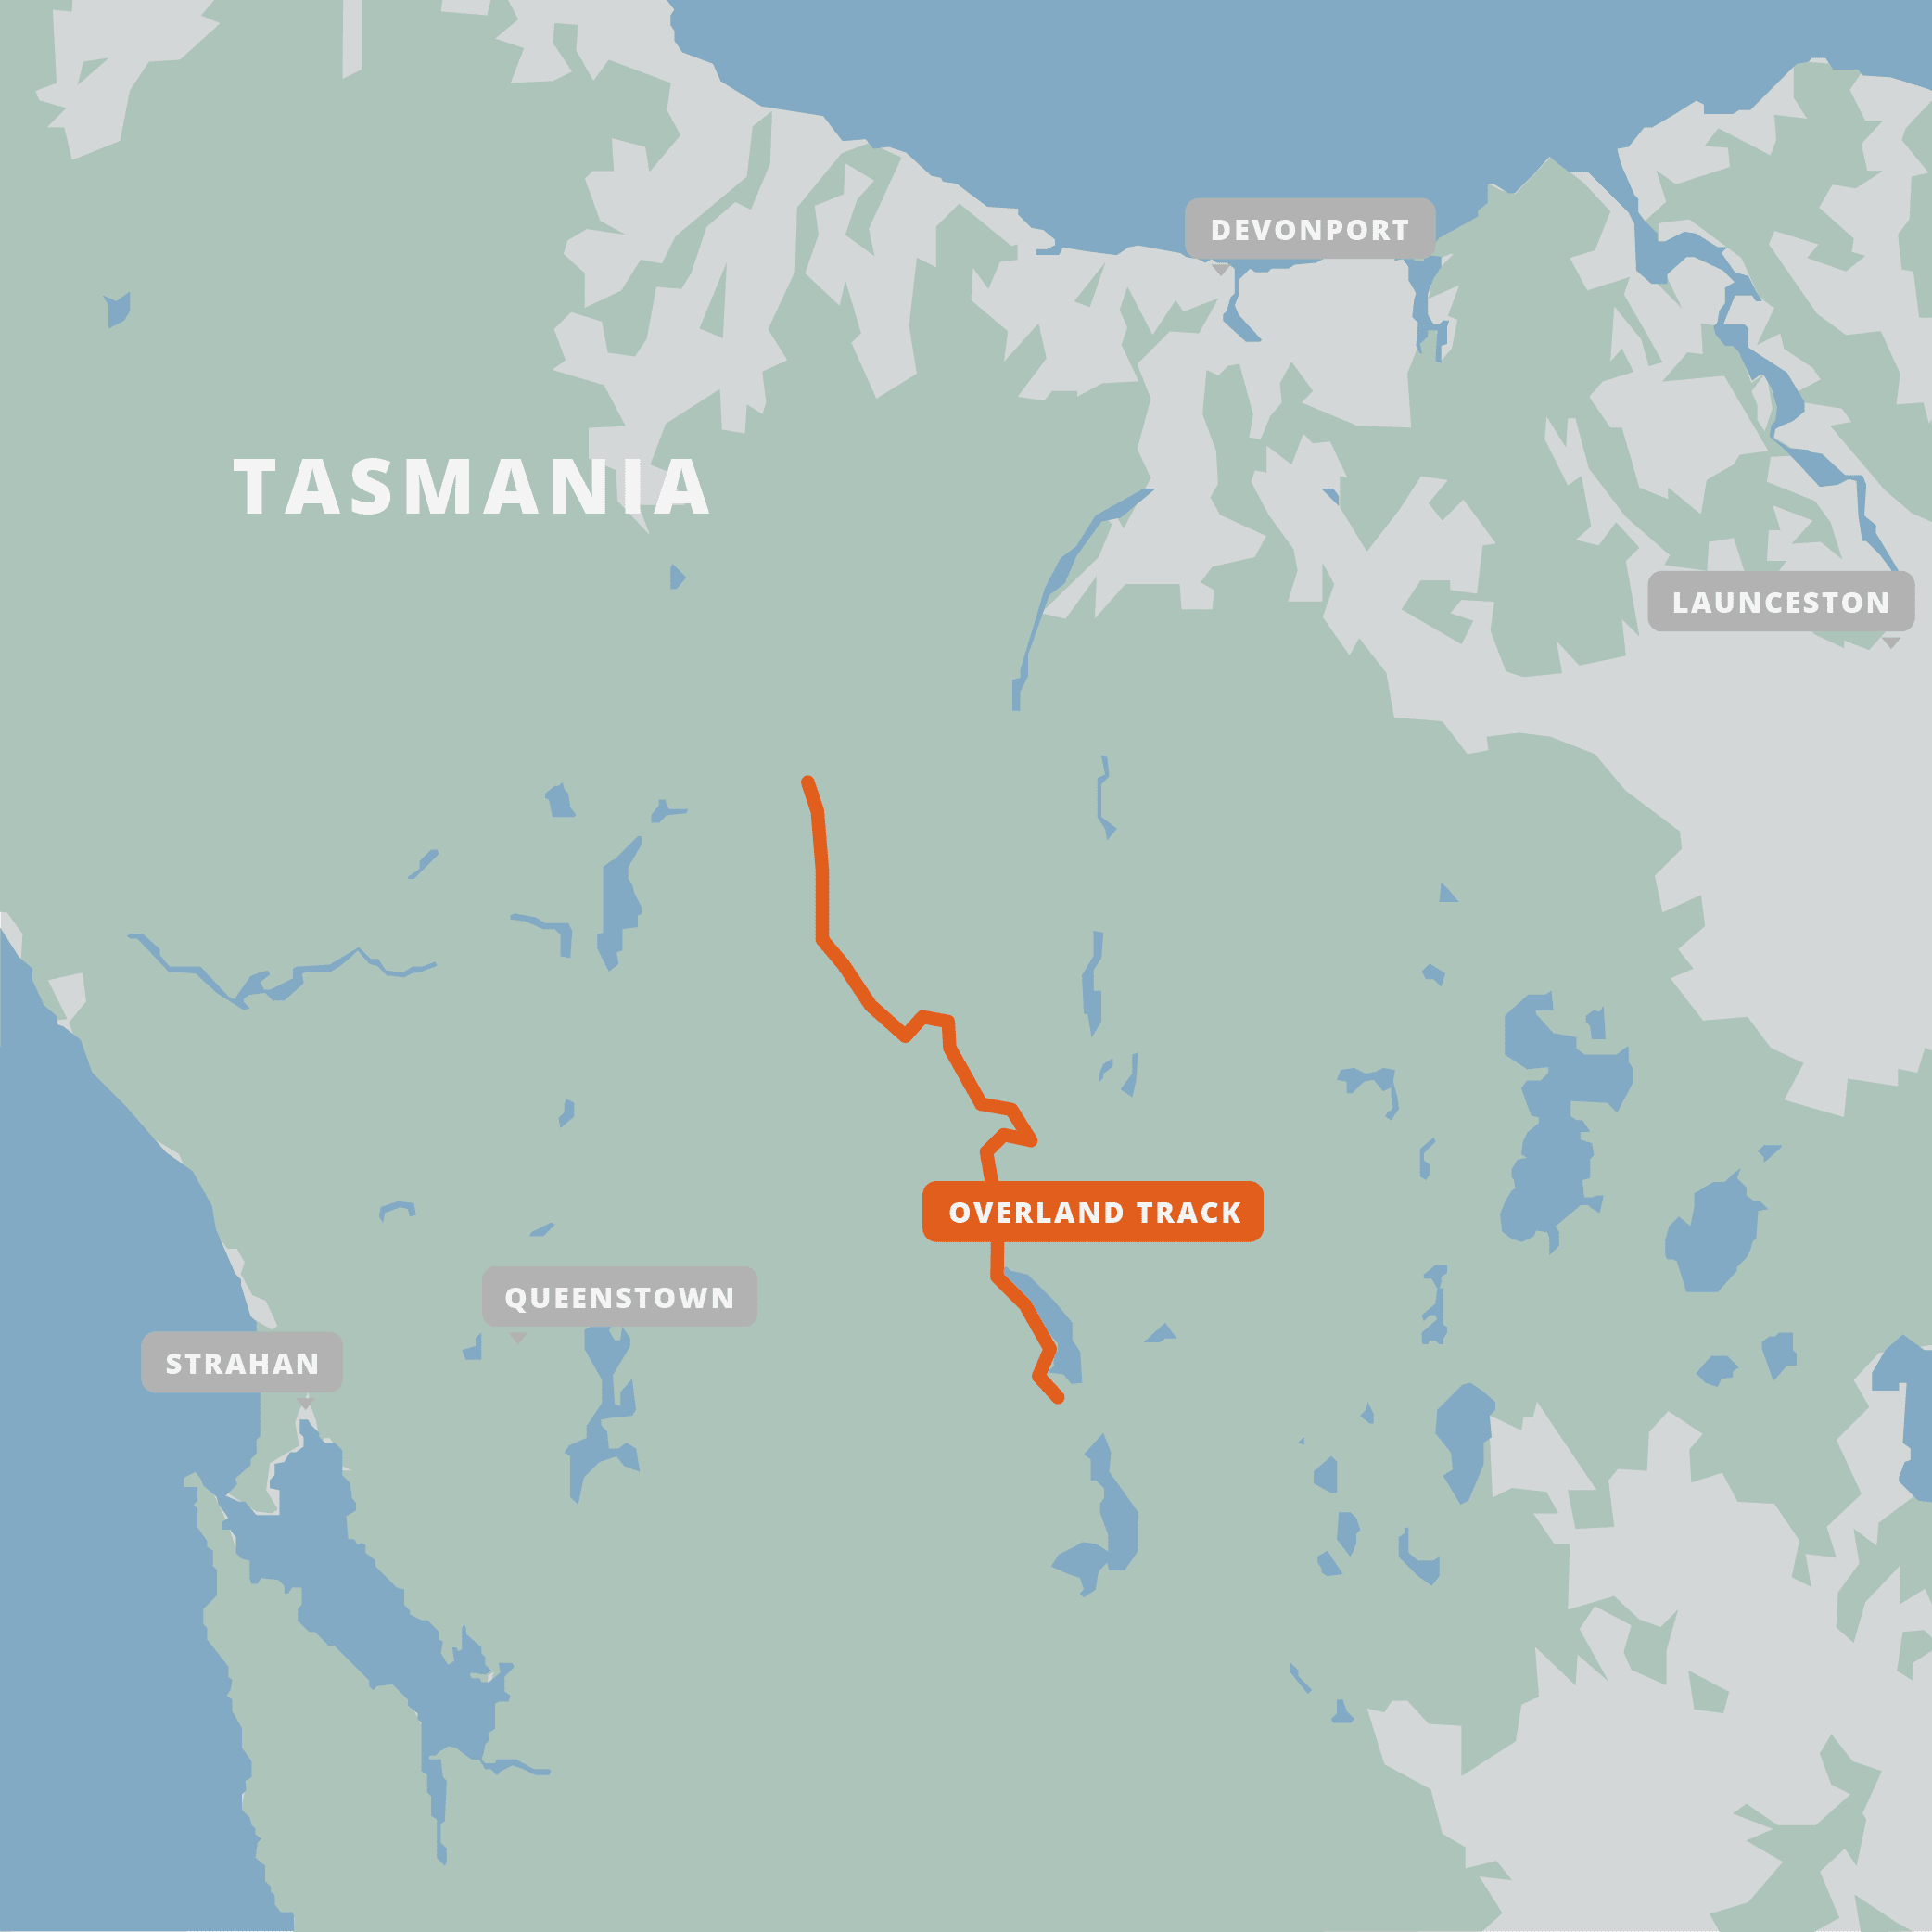 A map of the Overland Track.